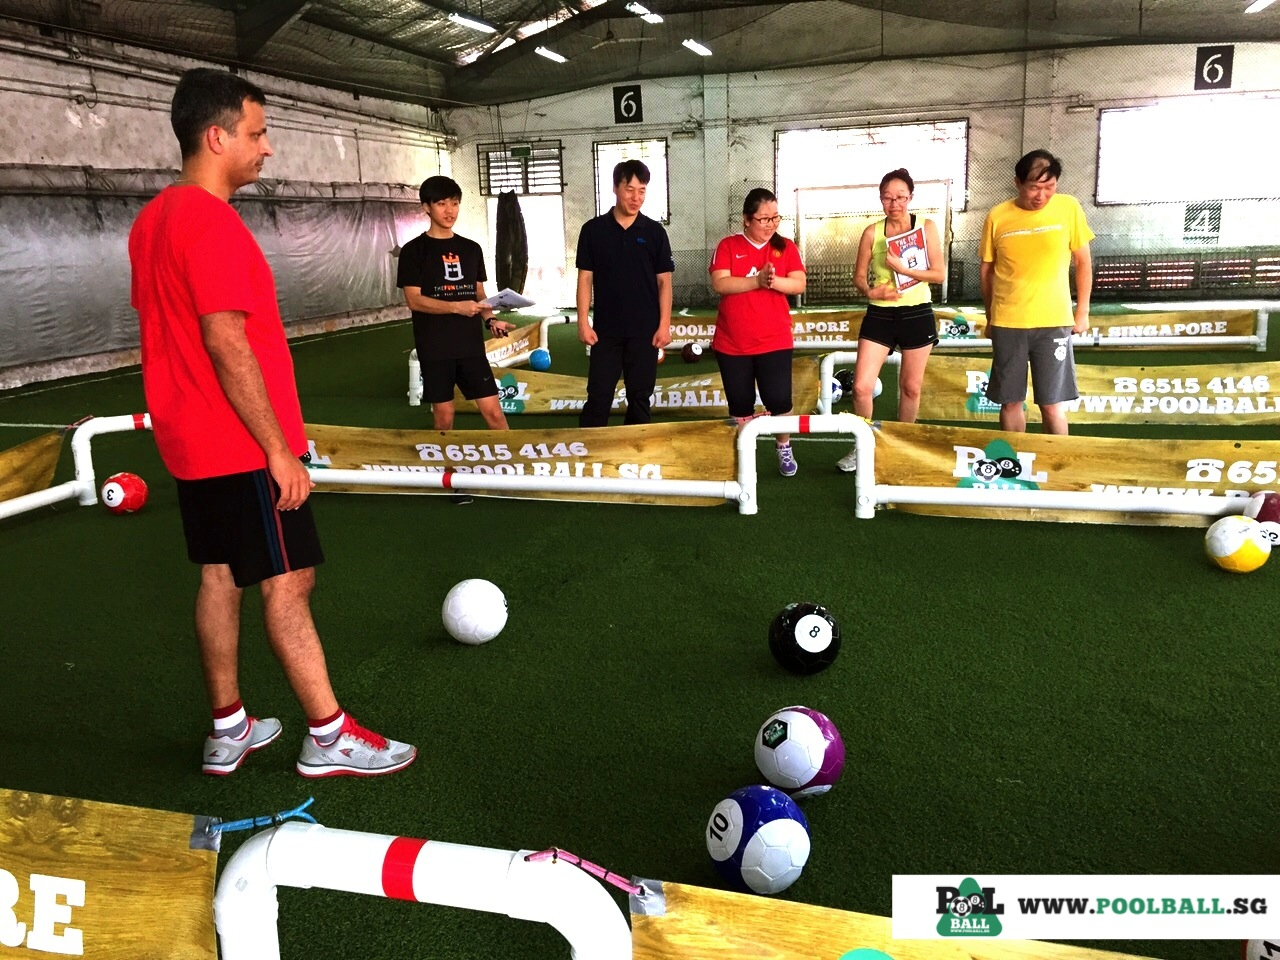 Team poolball singapore - Team building swimming pool games ...